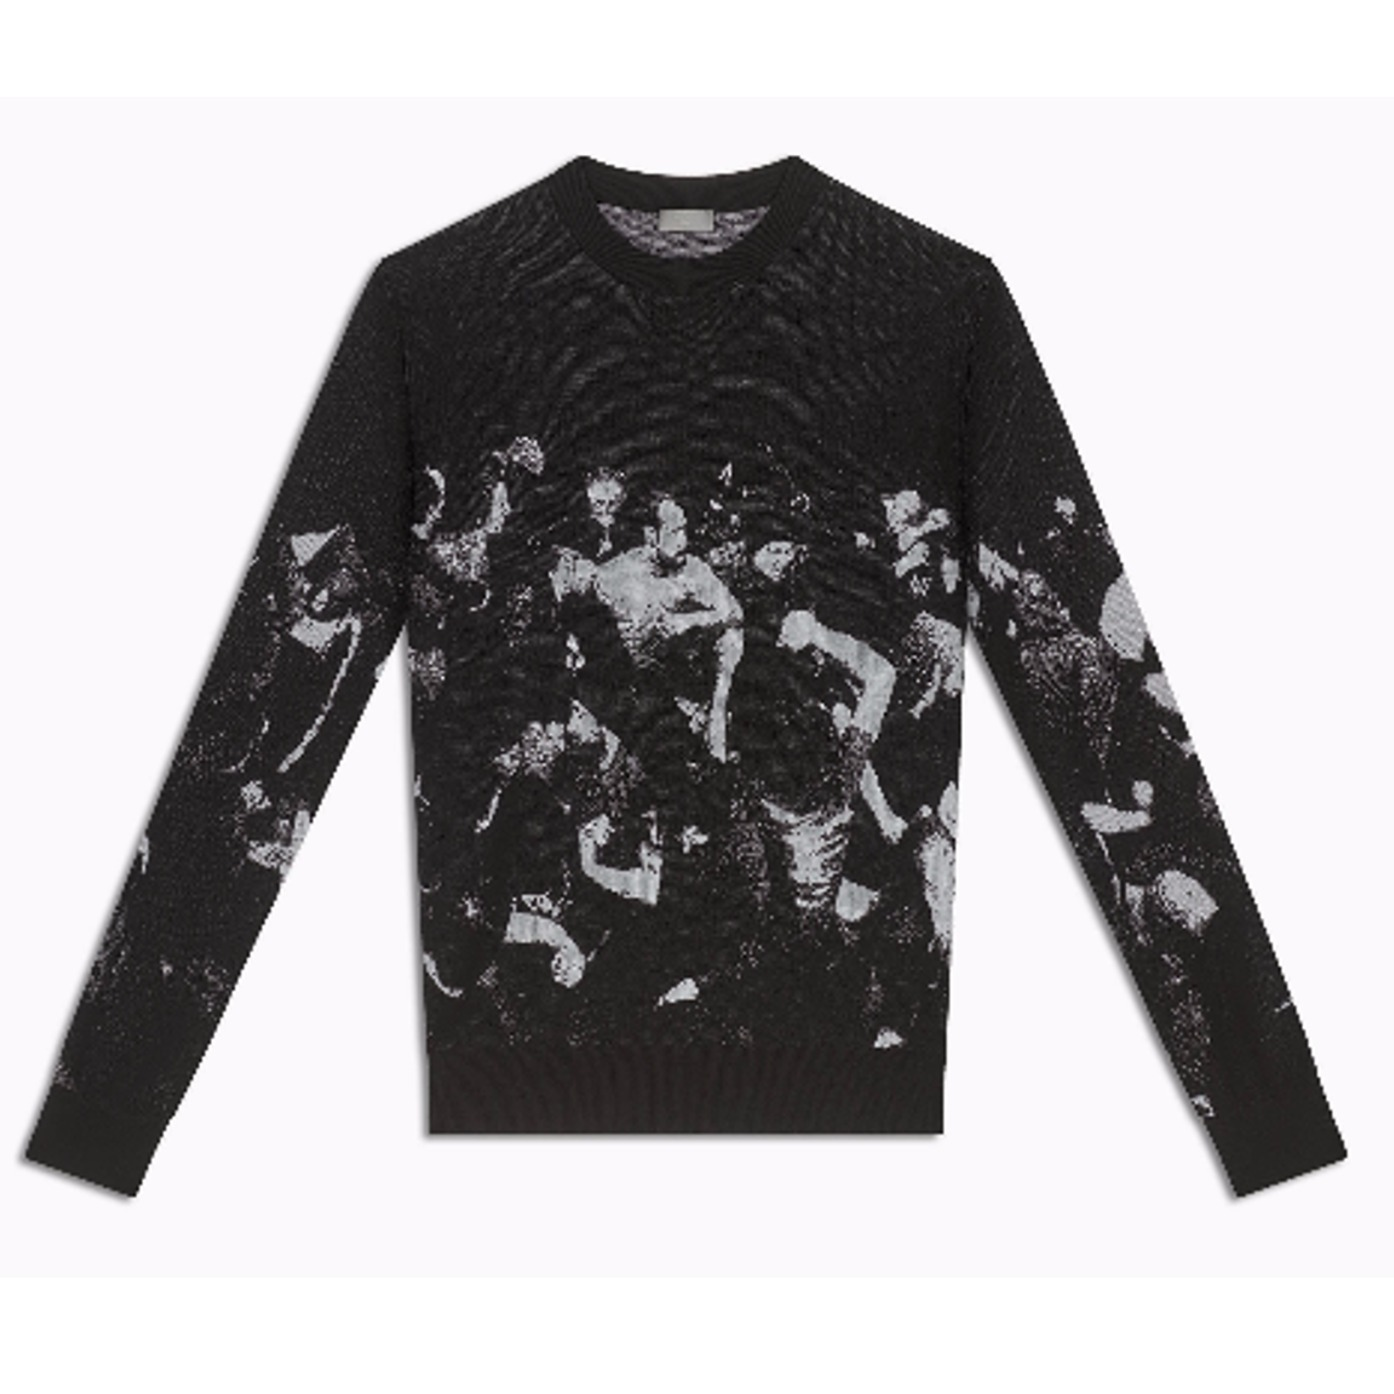 【2017AW新作】DIOR HOMME セーター ダン・ウィッツ ジャカード